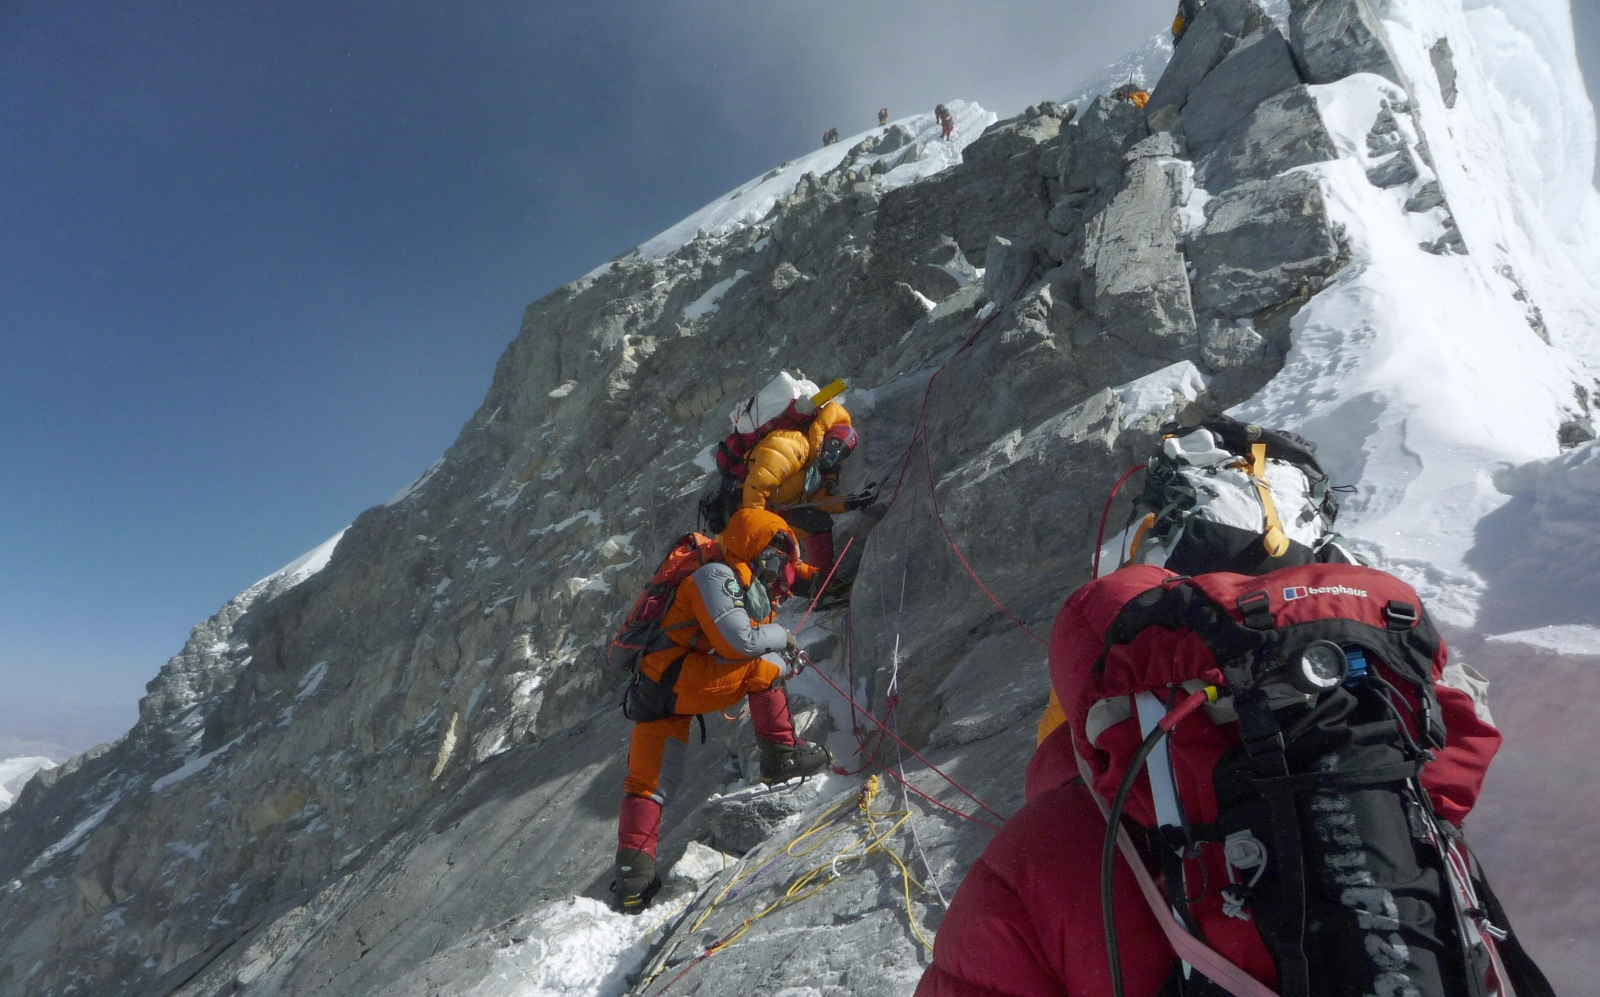 Bodies of 3 Indian climbers retrieved from Everest